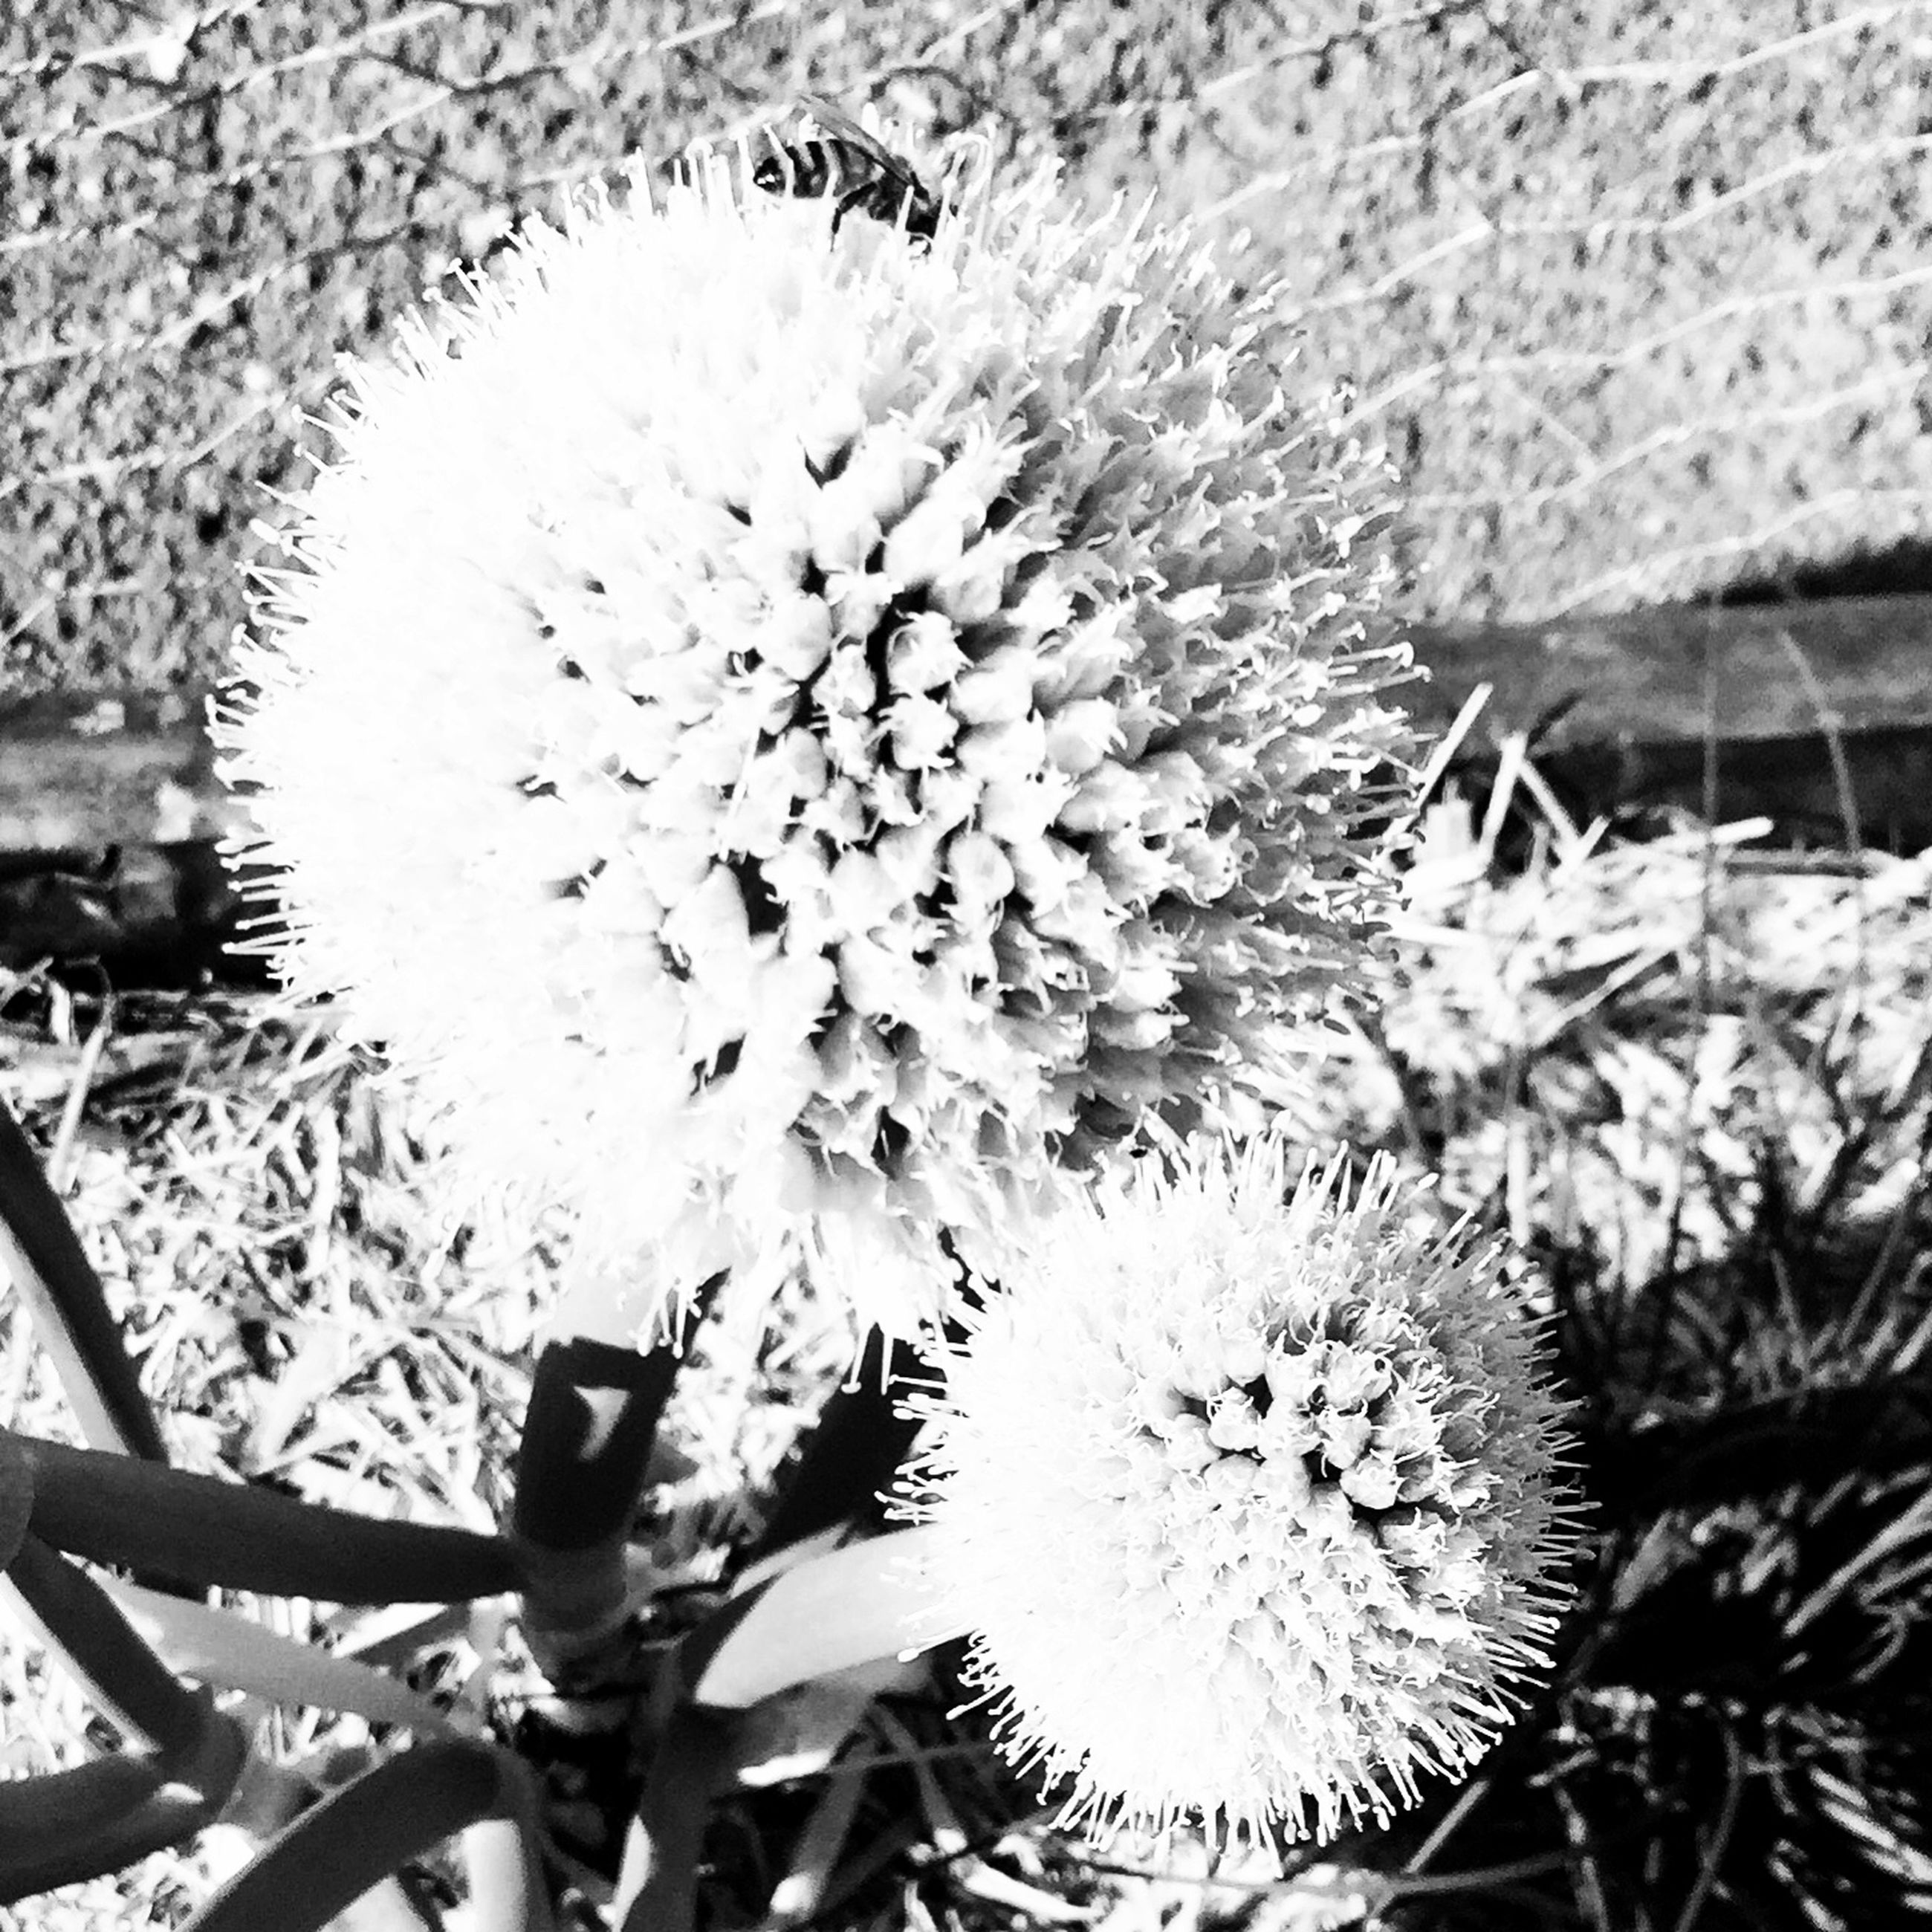 growth, flower, freshness, plant, nature, close-up, leaf, fragility, cactus, beauty in nature, day, high angle view, outdoors, no people, thorn, growing, focus on foreground, spiked, flower head, water